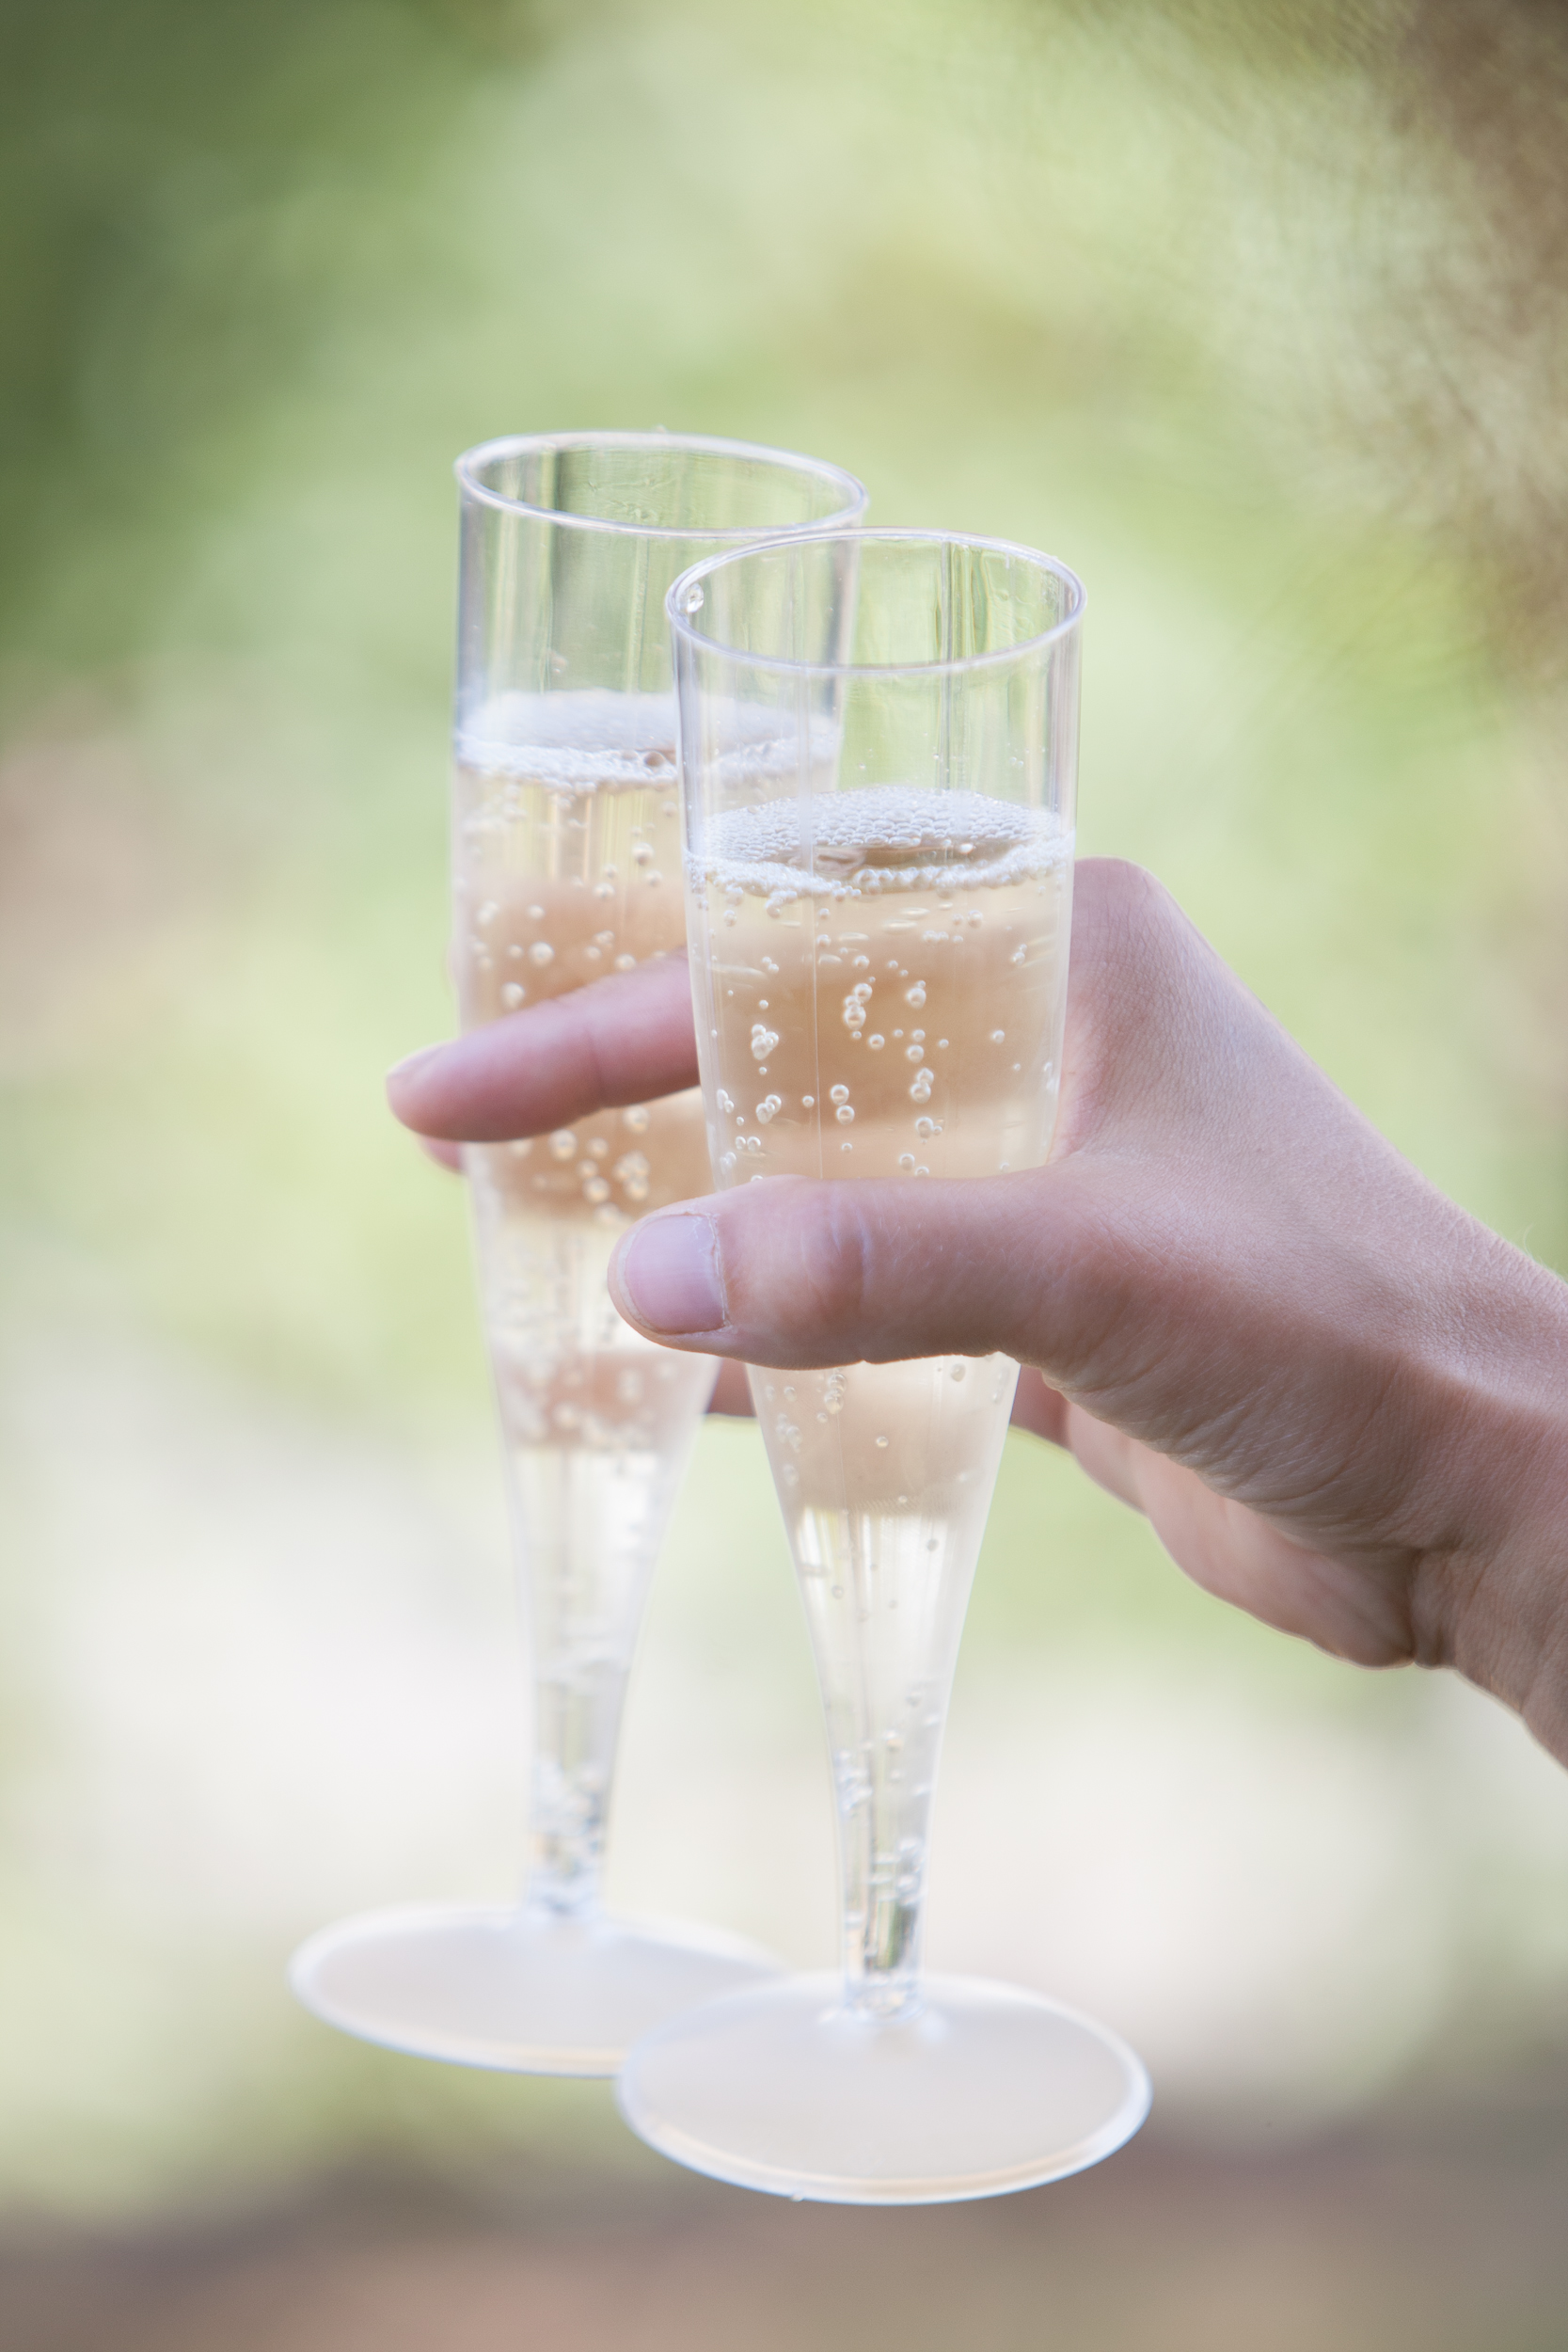 A female hand holding two glasses of champagne, ready to drink and toast